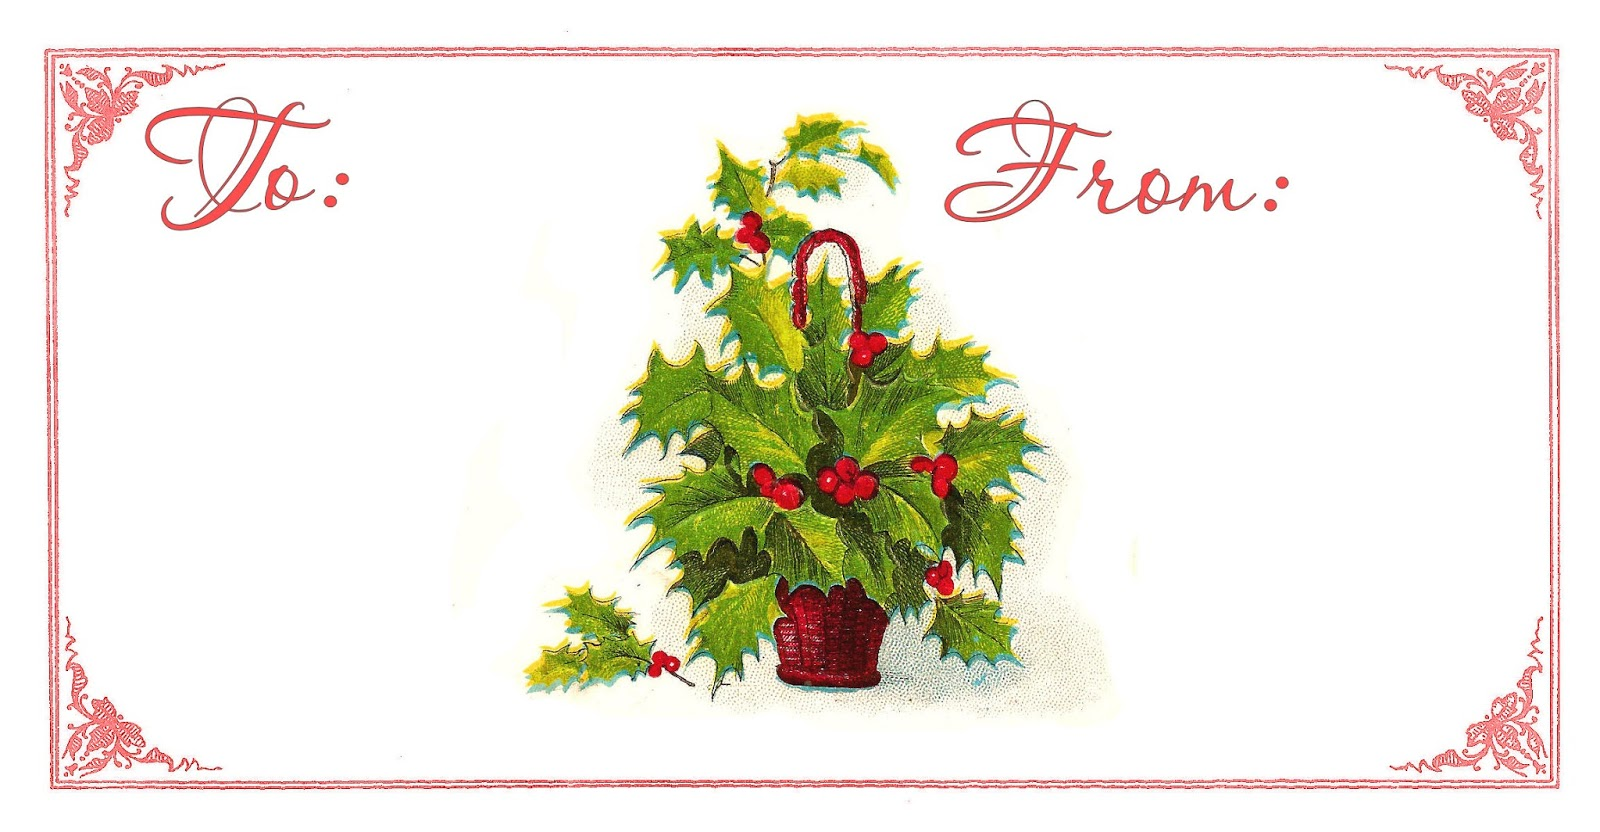 Poinsettia clipart christmas gift tag The gift Gift Graphics Monarch: